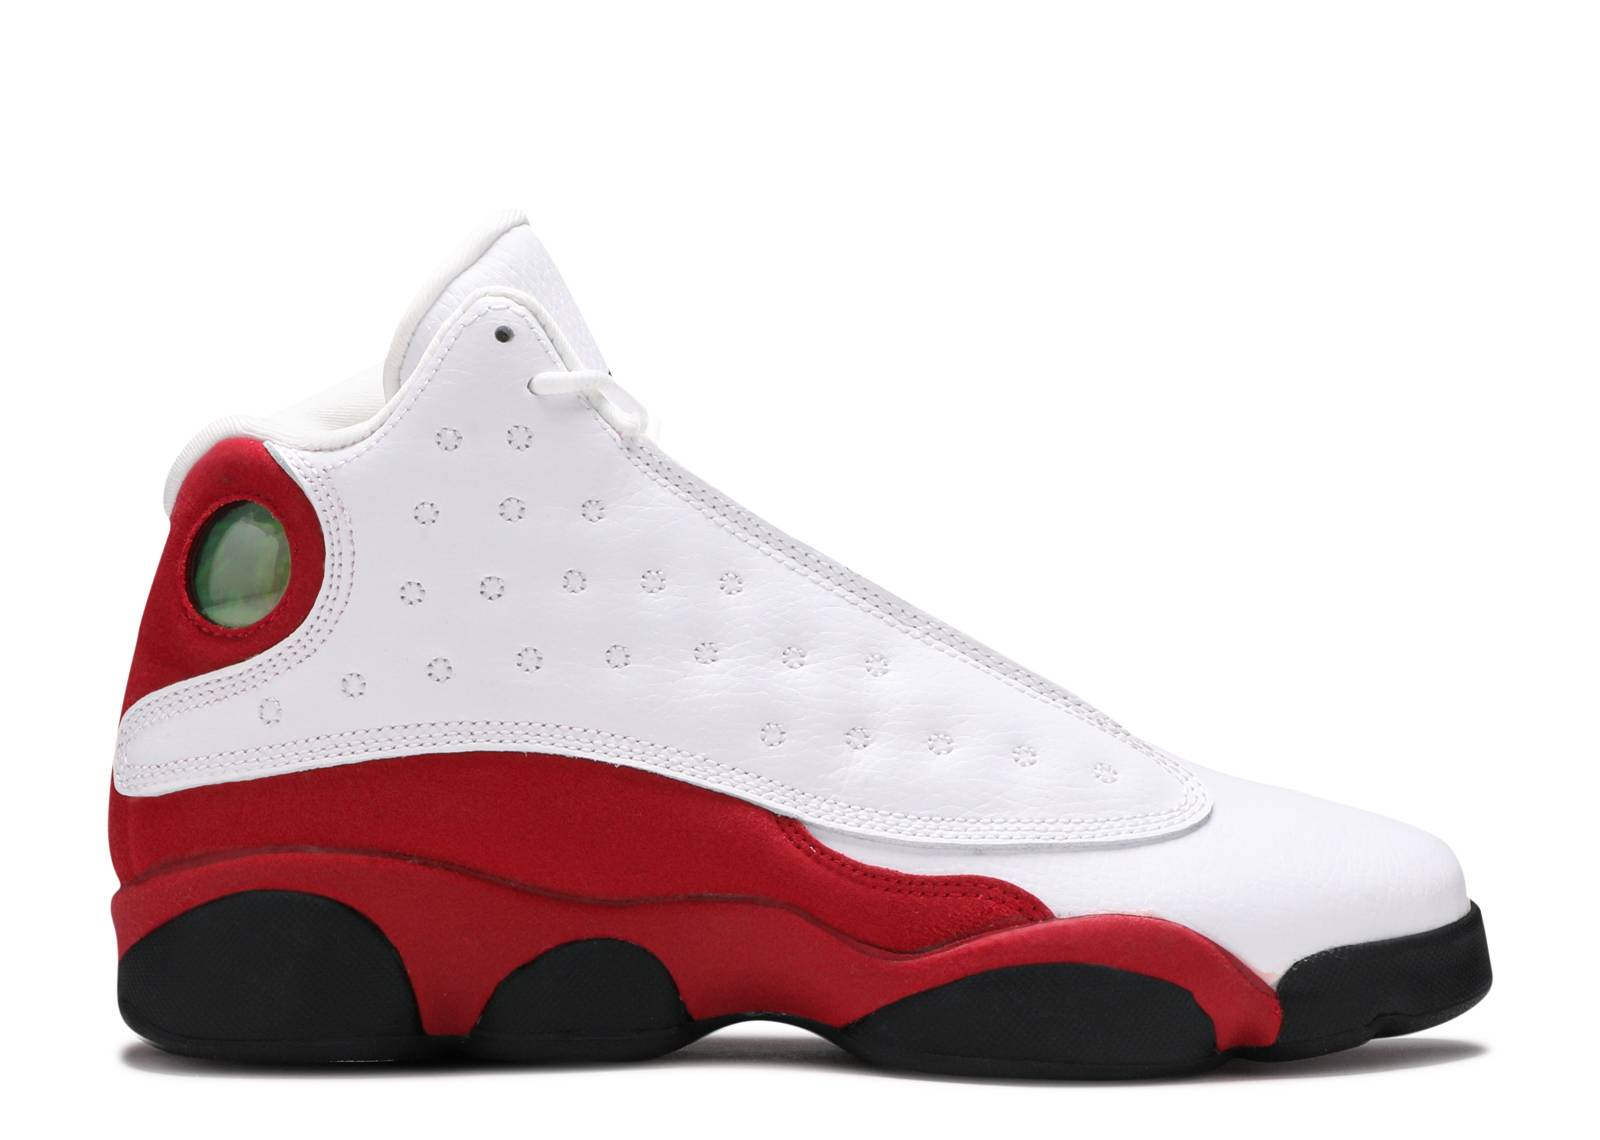 Air Jordan 13 Retro BG (GS) Chicago 2017 - 414574-122 -